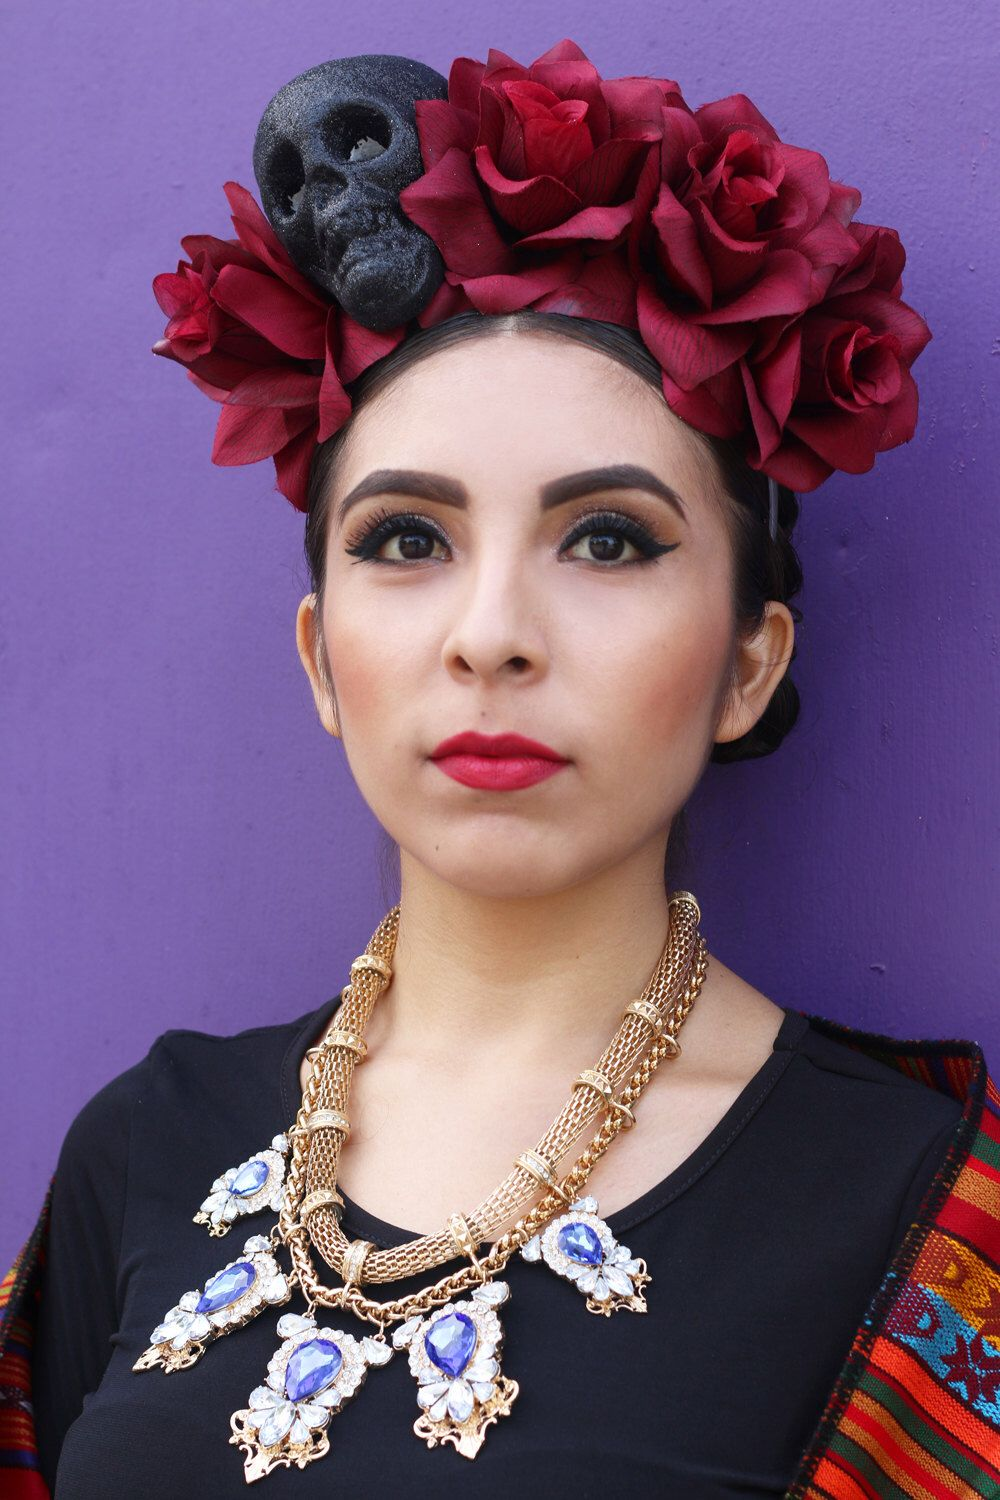 Wine red flower crown headband costume day of the dead headpiece mexican headdress goth gothic - Deguisement frida kahlo ...